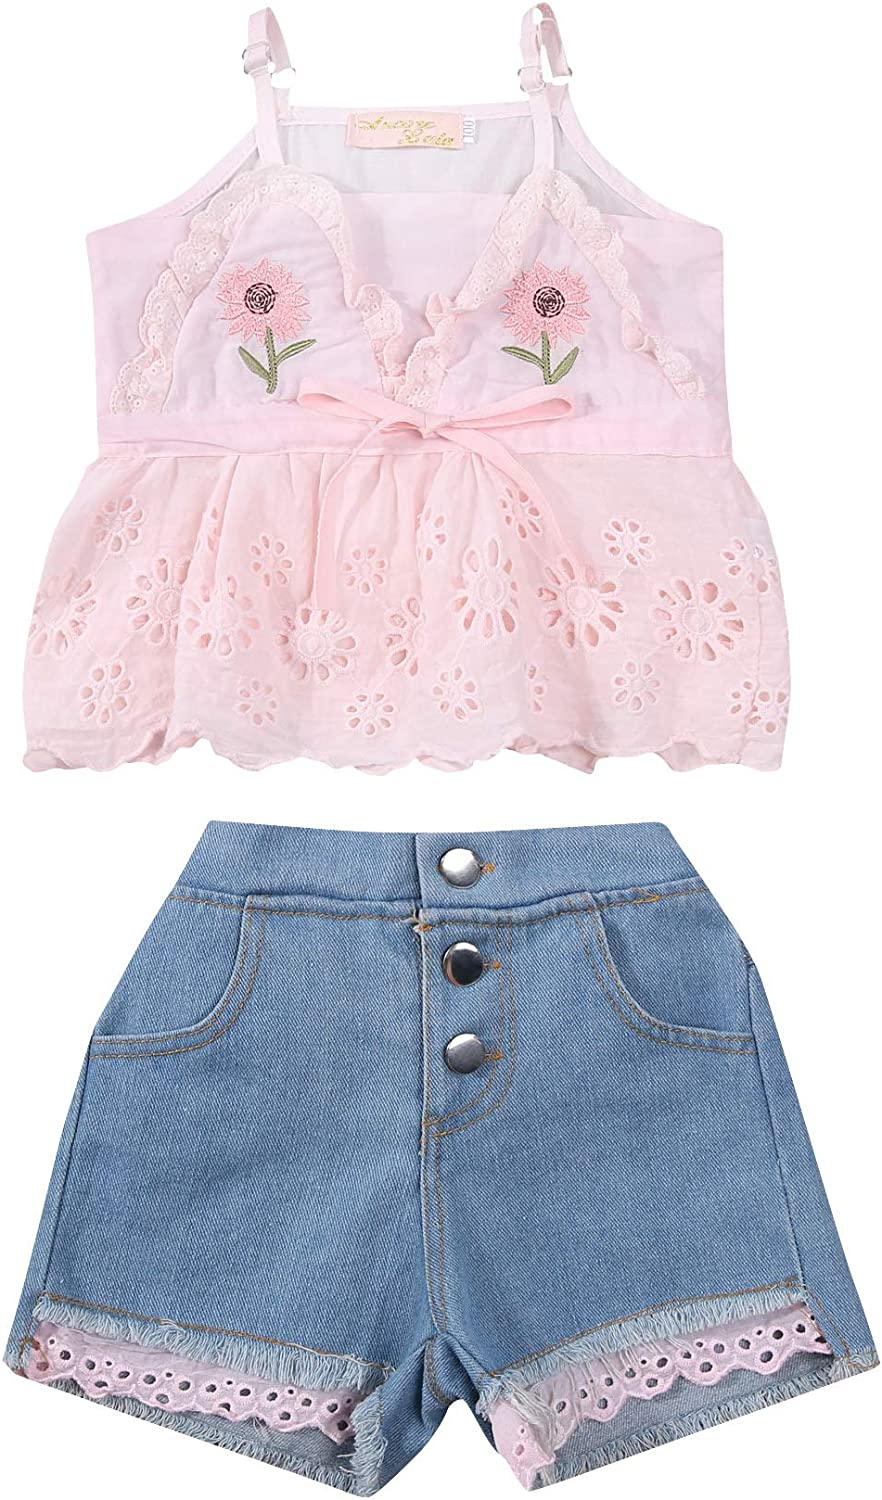 Inevnen Baby Girl Clothes Infant Toddler Girl Summer Outfits Floral Top Ripped Denim Shorts Set